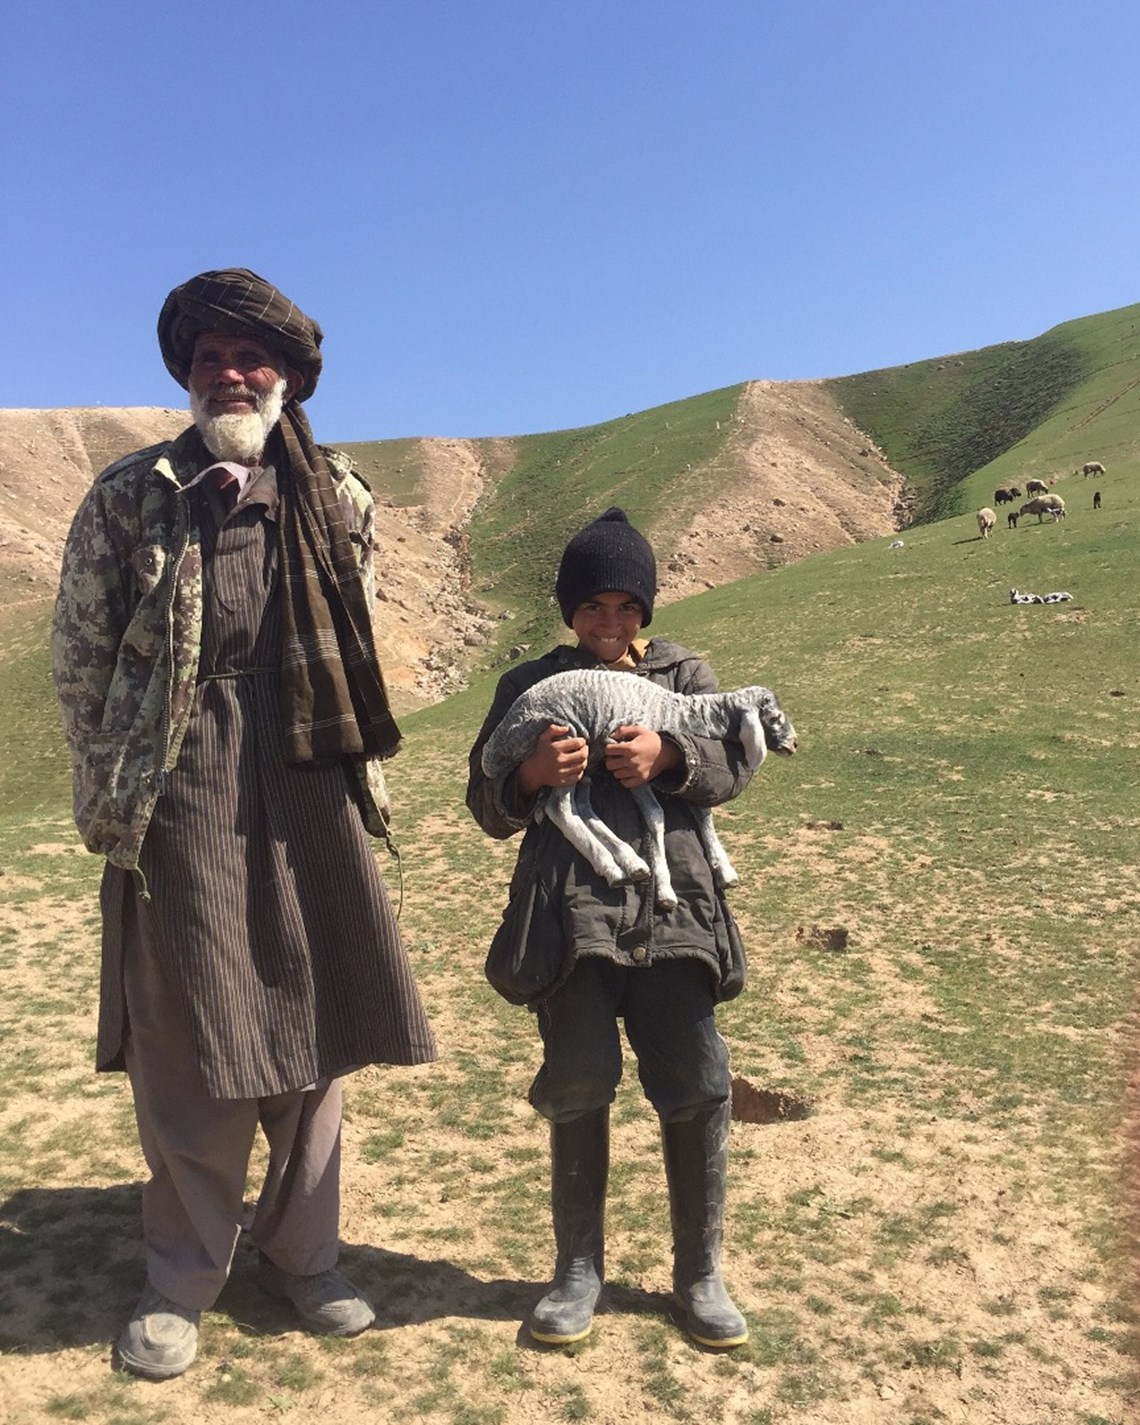 Abdul Hakim stands with his grandson on the land HALO cleared of mines